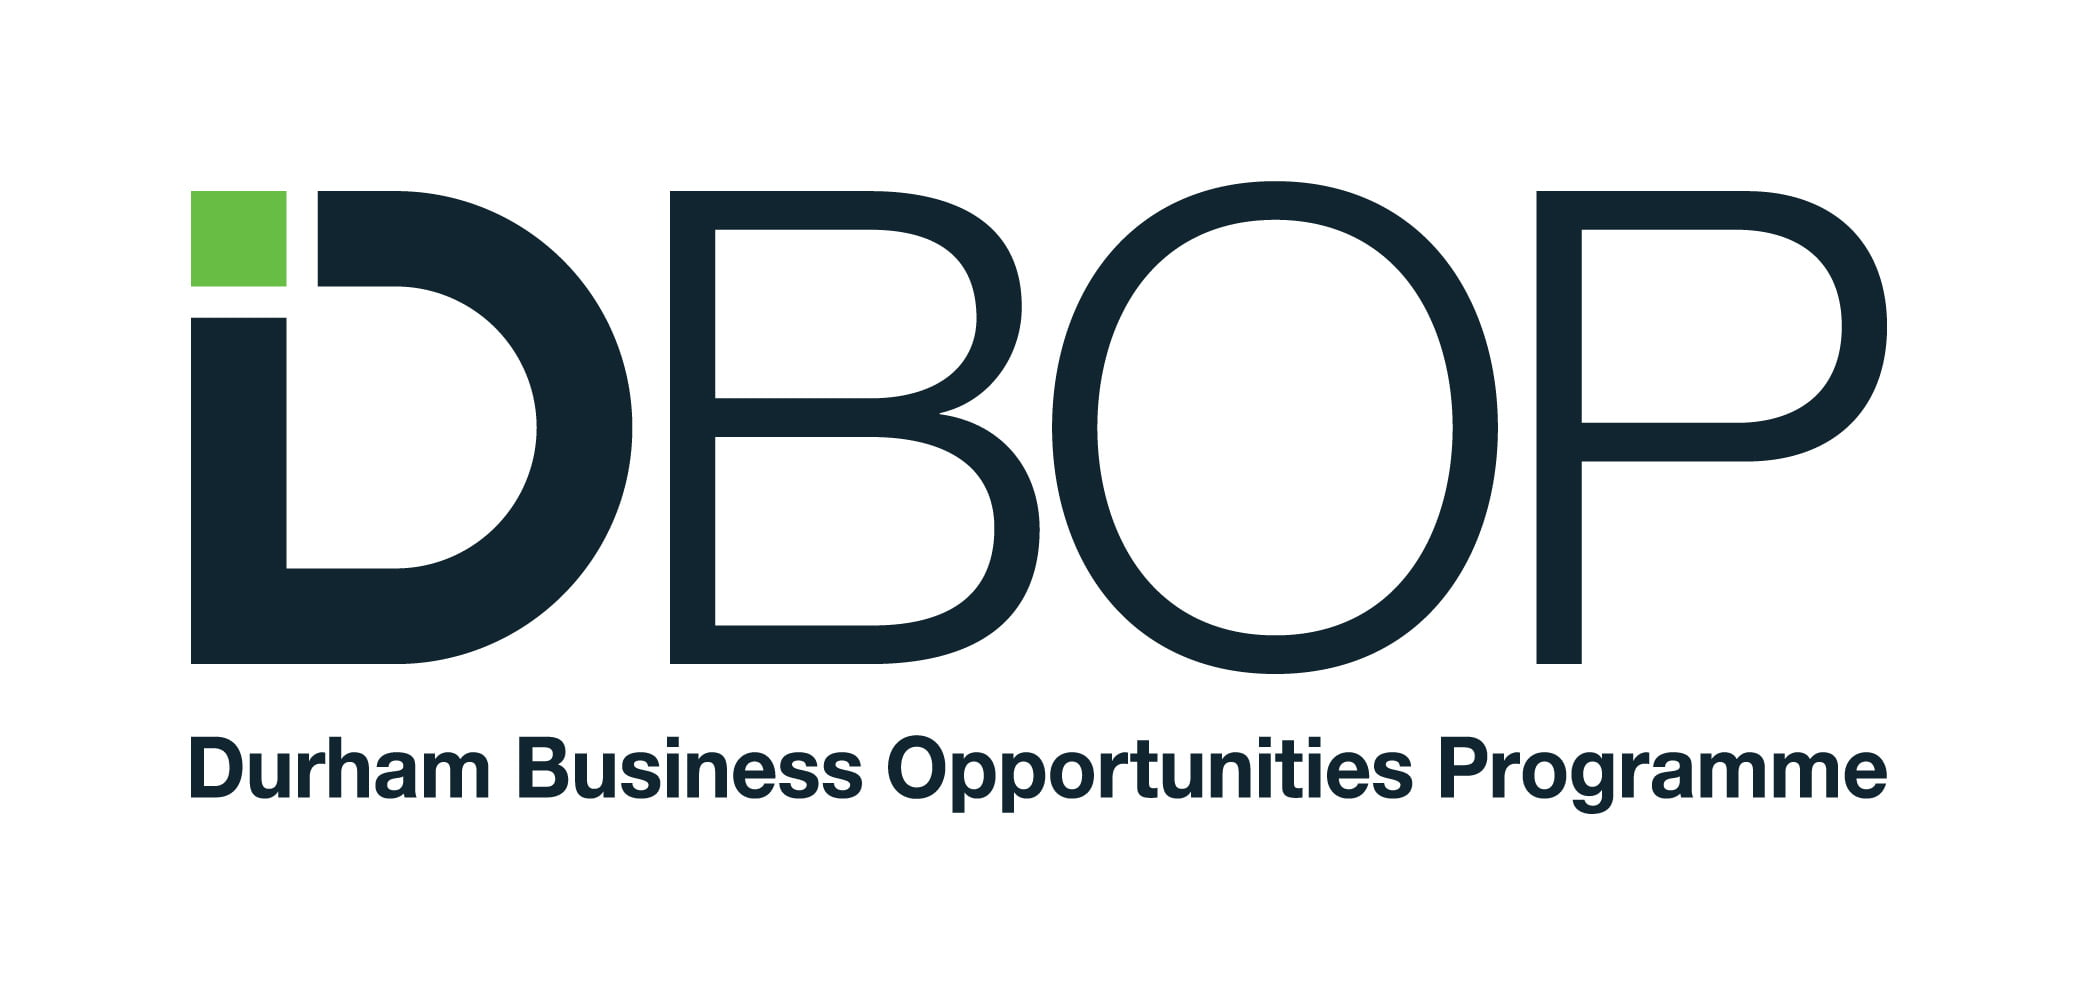 The Durham Business Opportunities Programme logo